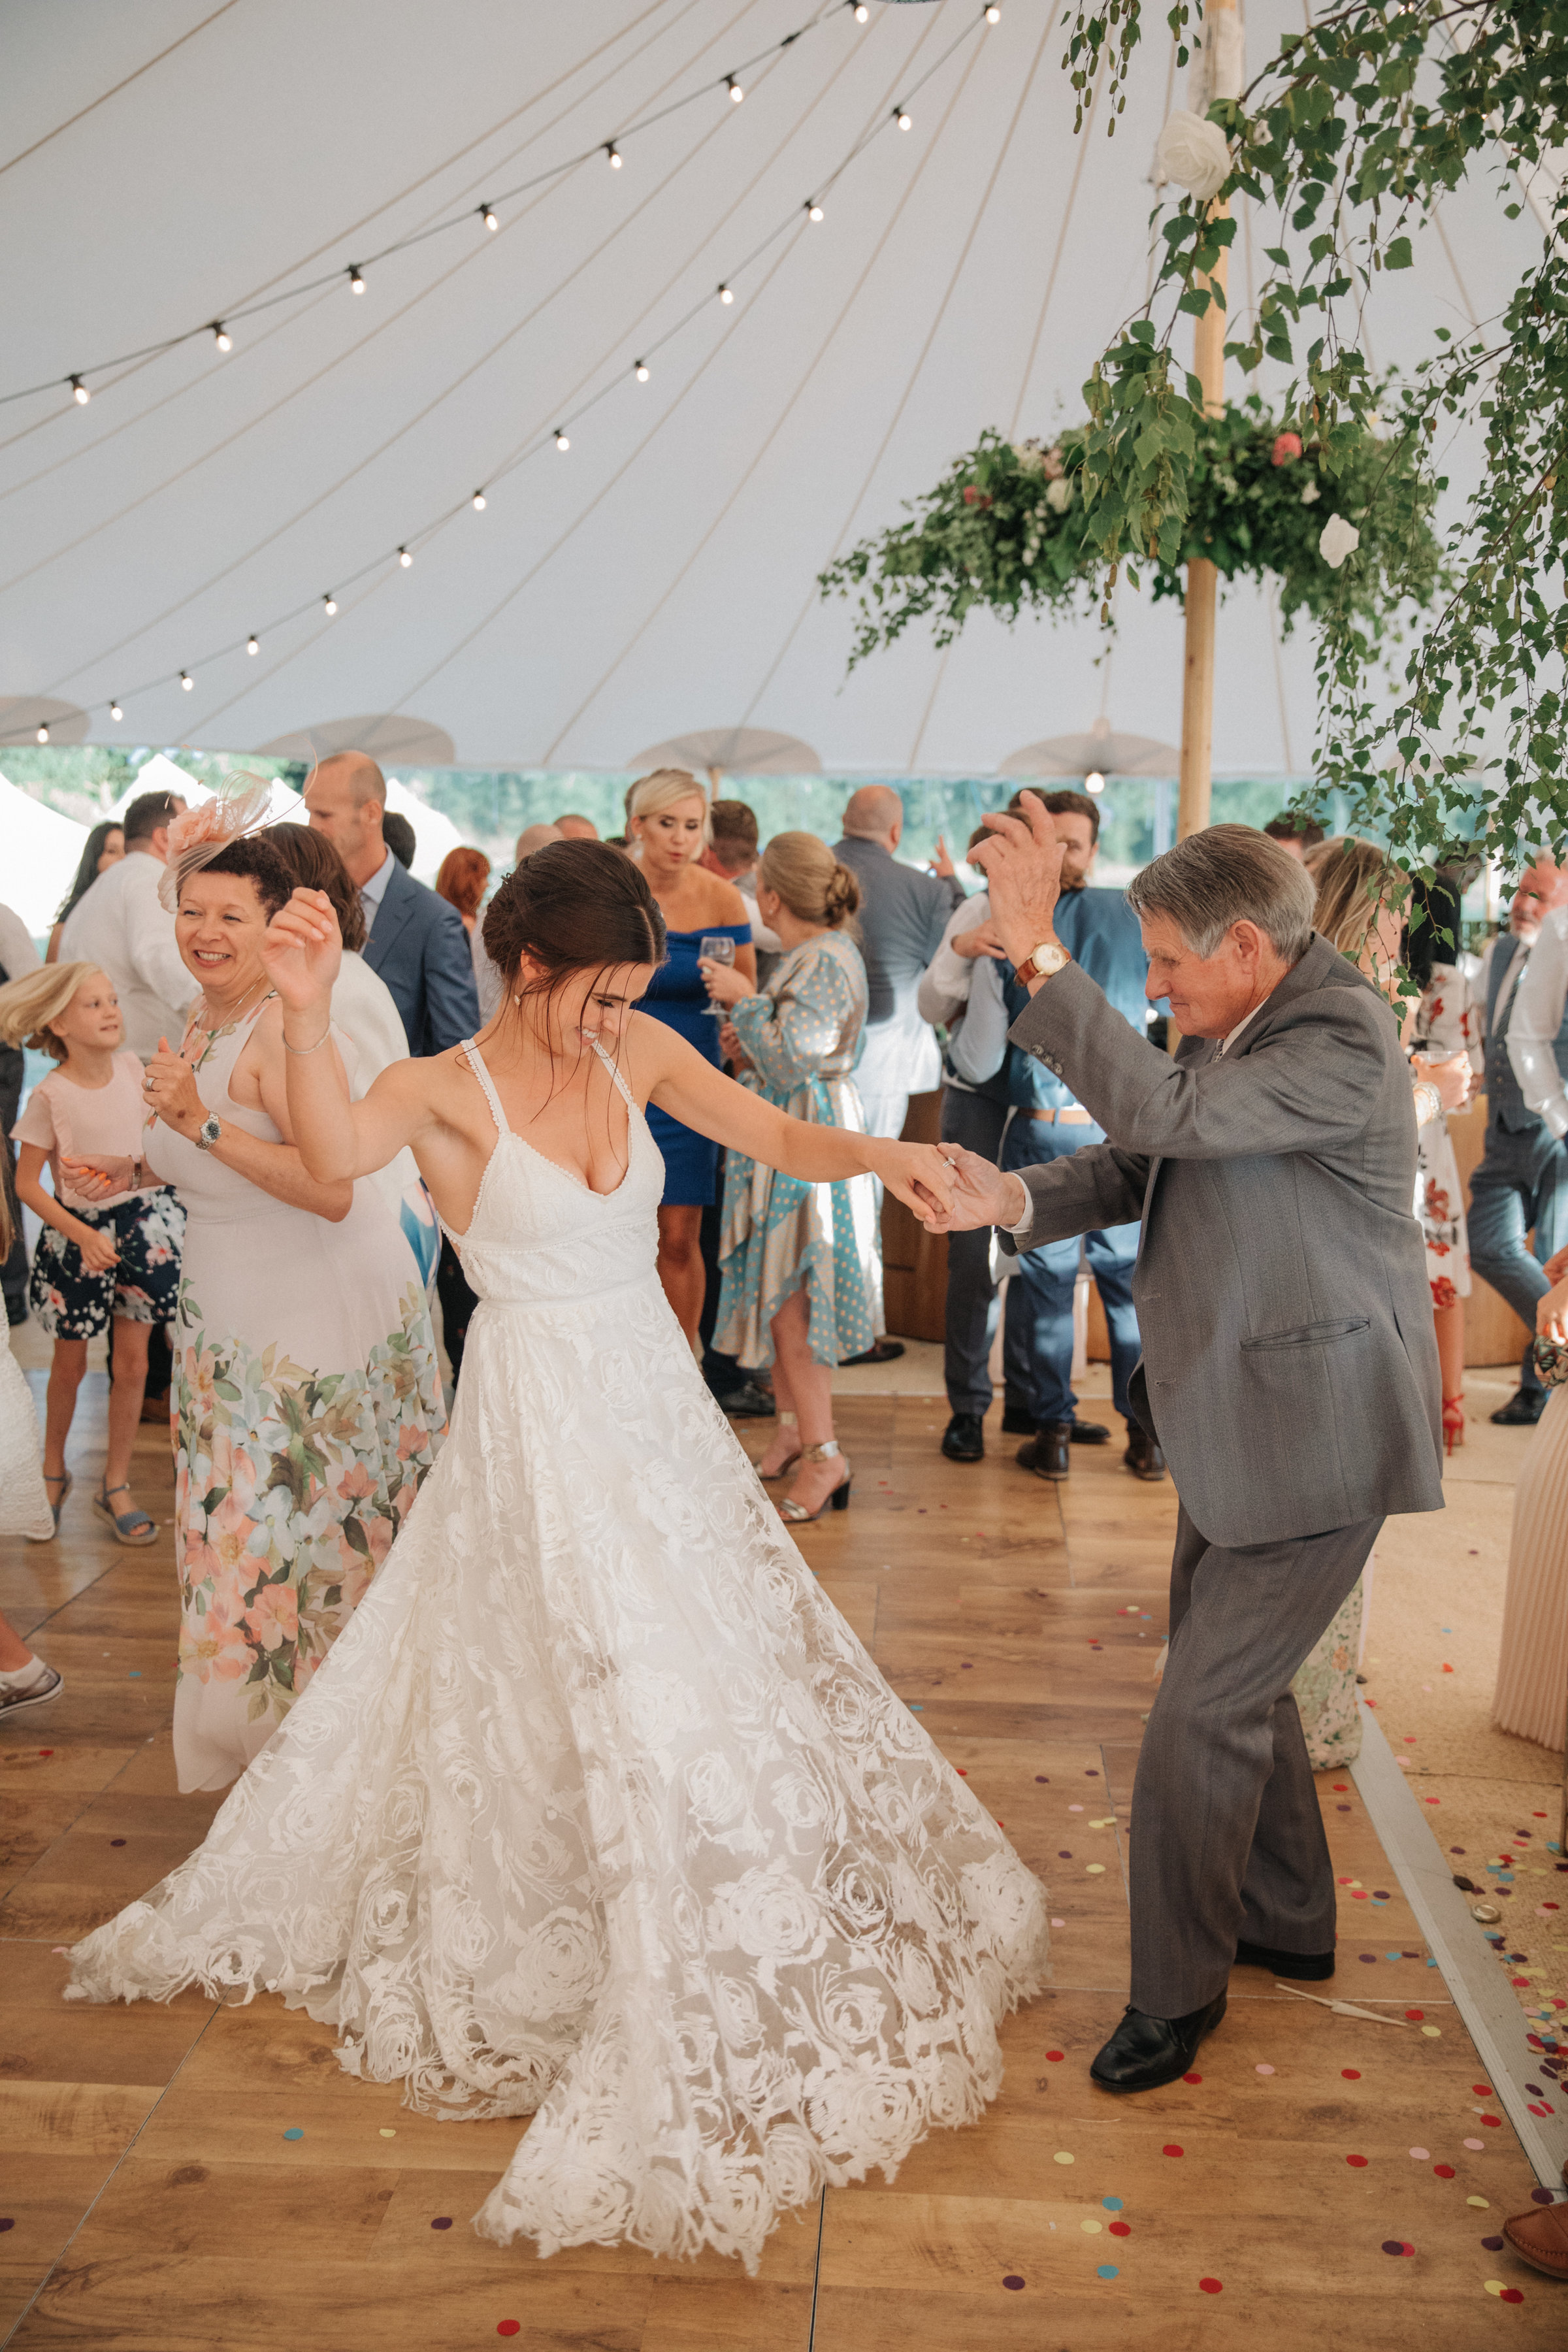 Steph & Ed's PapaKåta Sperry Tent wedding at home in Nottingham captured by M & J Photography: Bridal Style